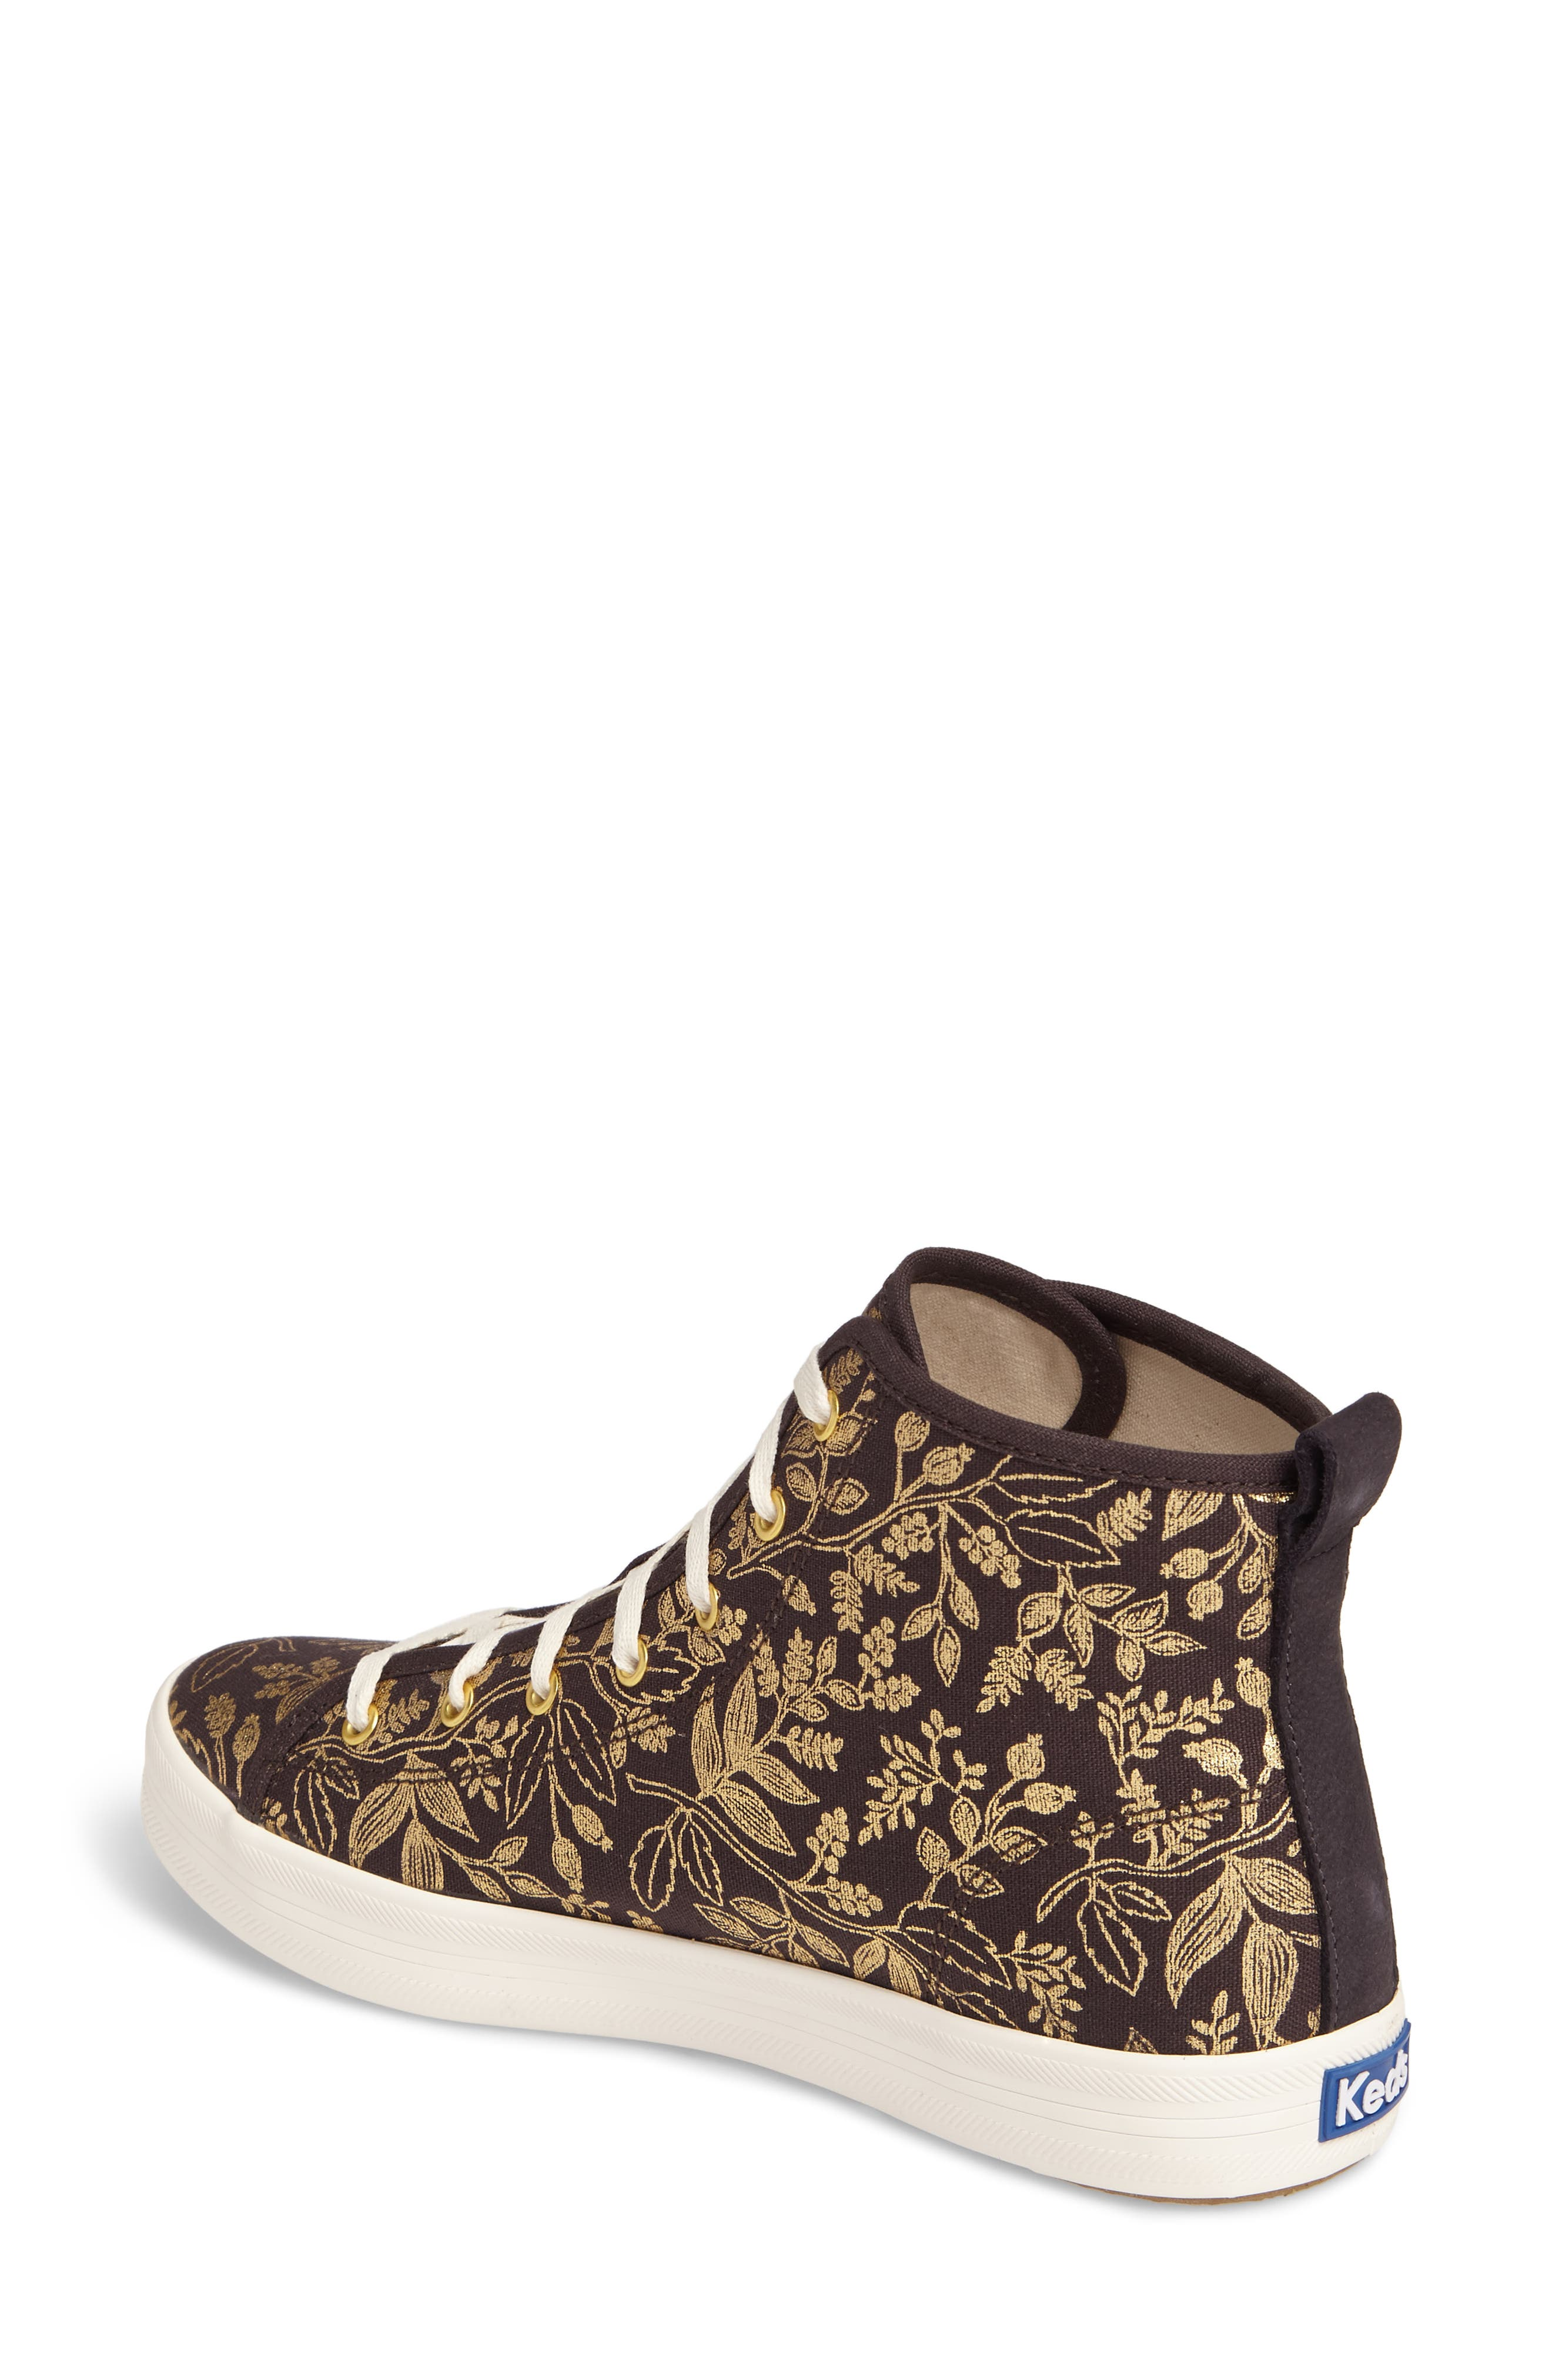 x Rifle Paper Co. Queen Anne High Top Sneaker,                             Alternate thumbnail 2, color,                             710